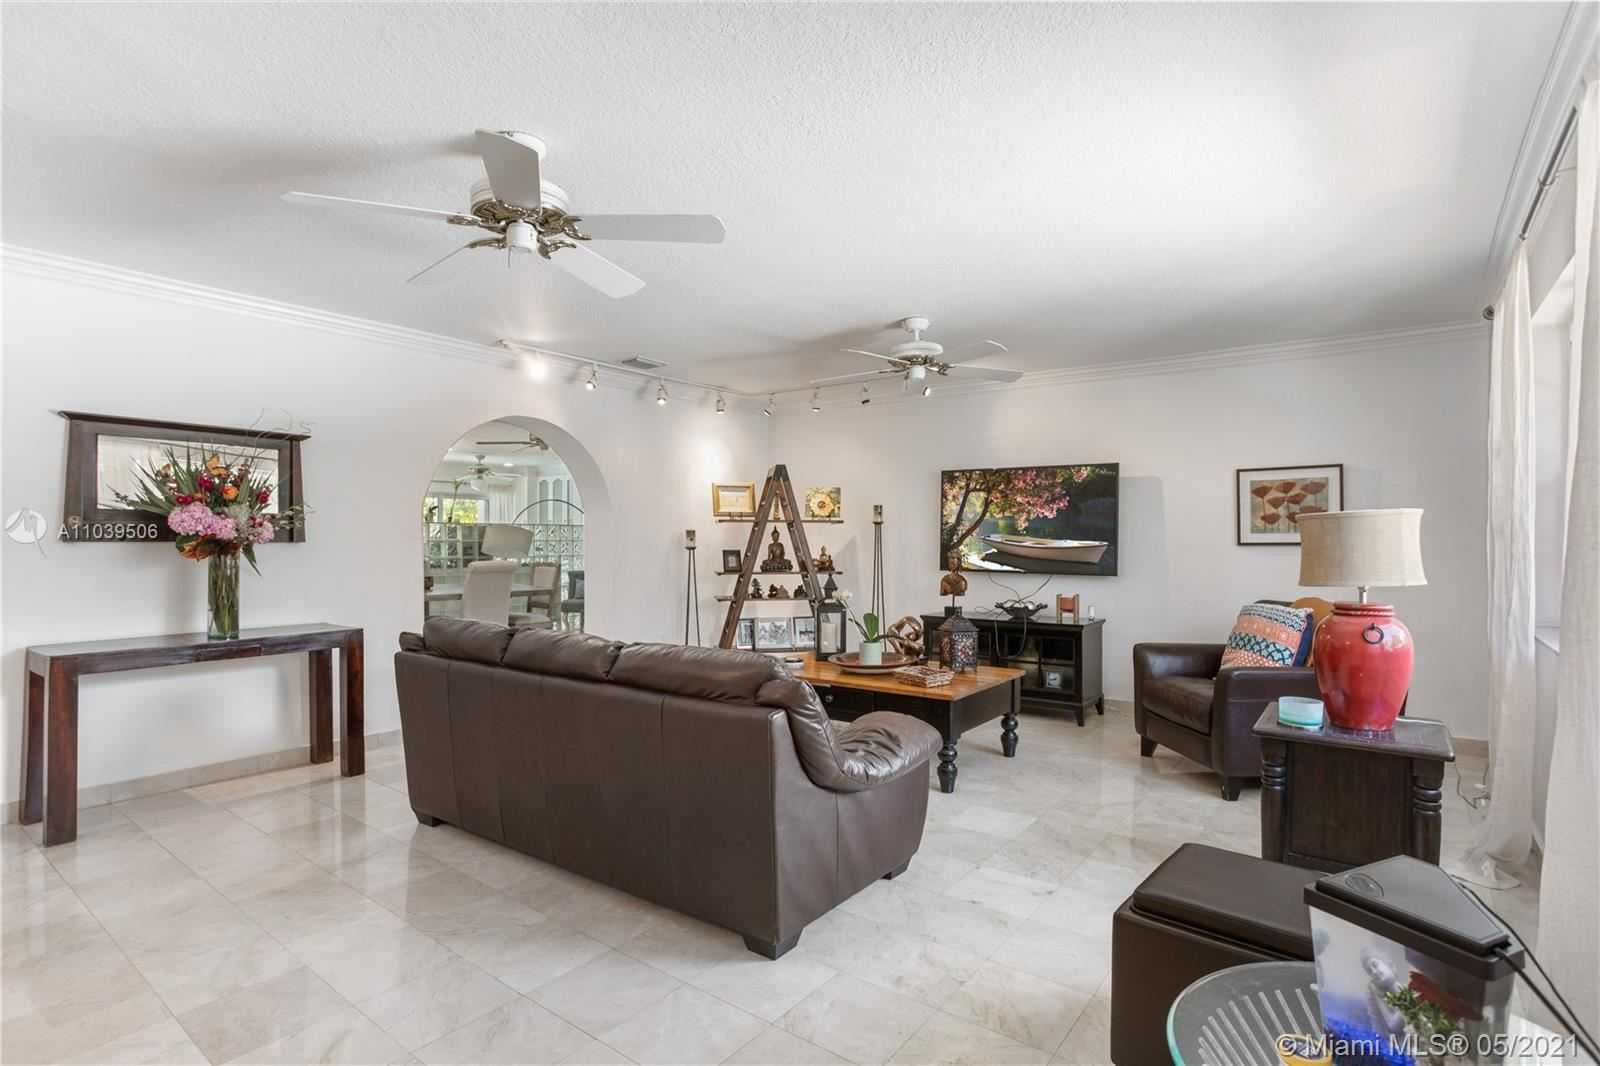 Photo of 1420 Campamento Ave, Coral Gables, FL 33156 (MLS # A11039506)